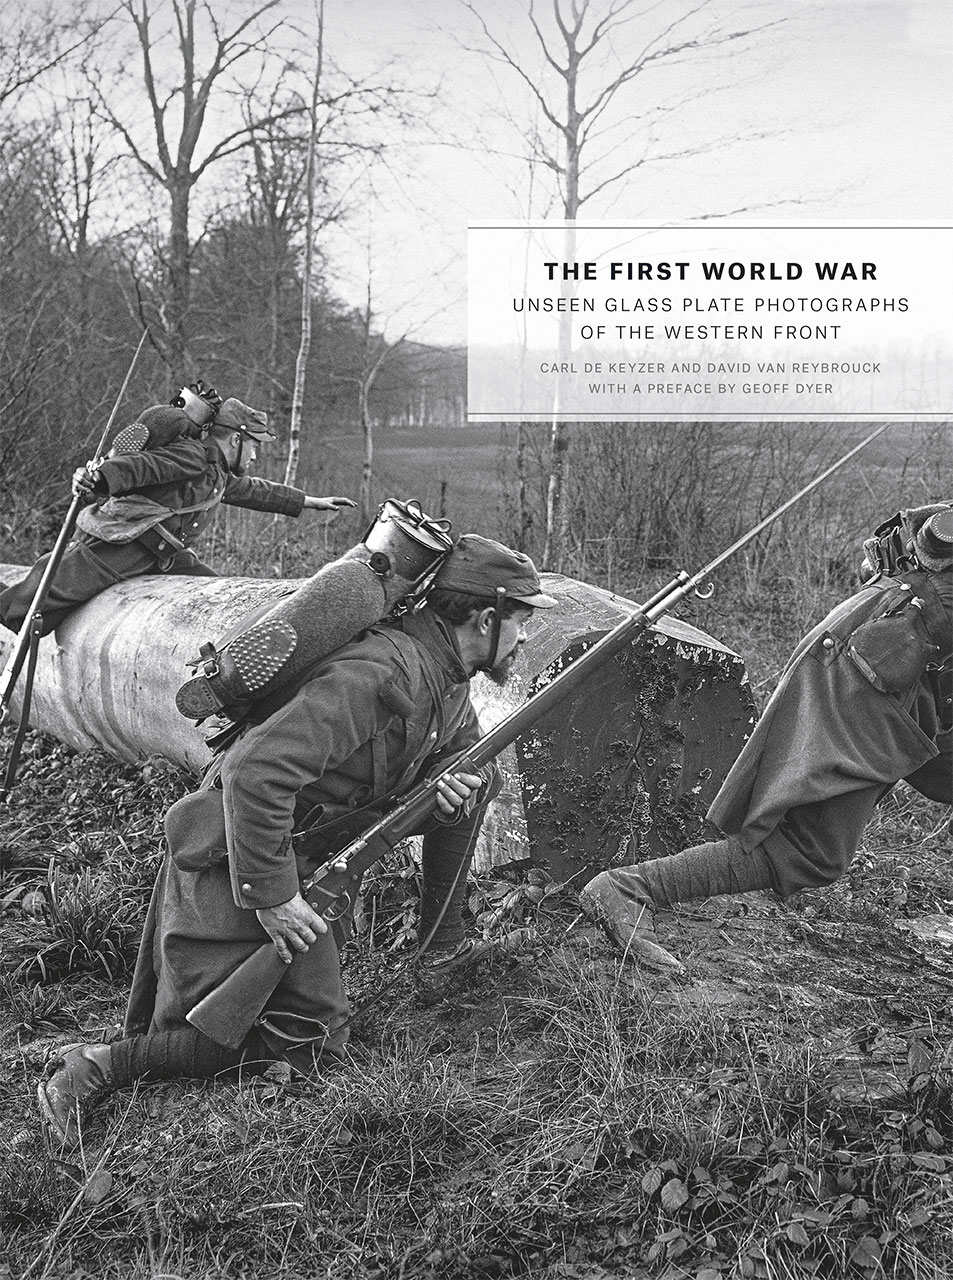 essay on first world war no place for rail sitters the  the first world war unseen glass plate photographs of the western the first world war addthis